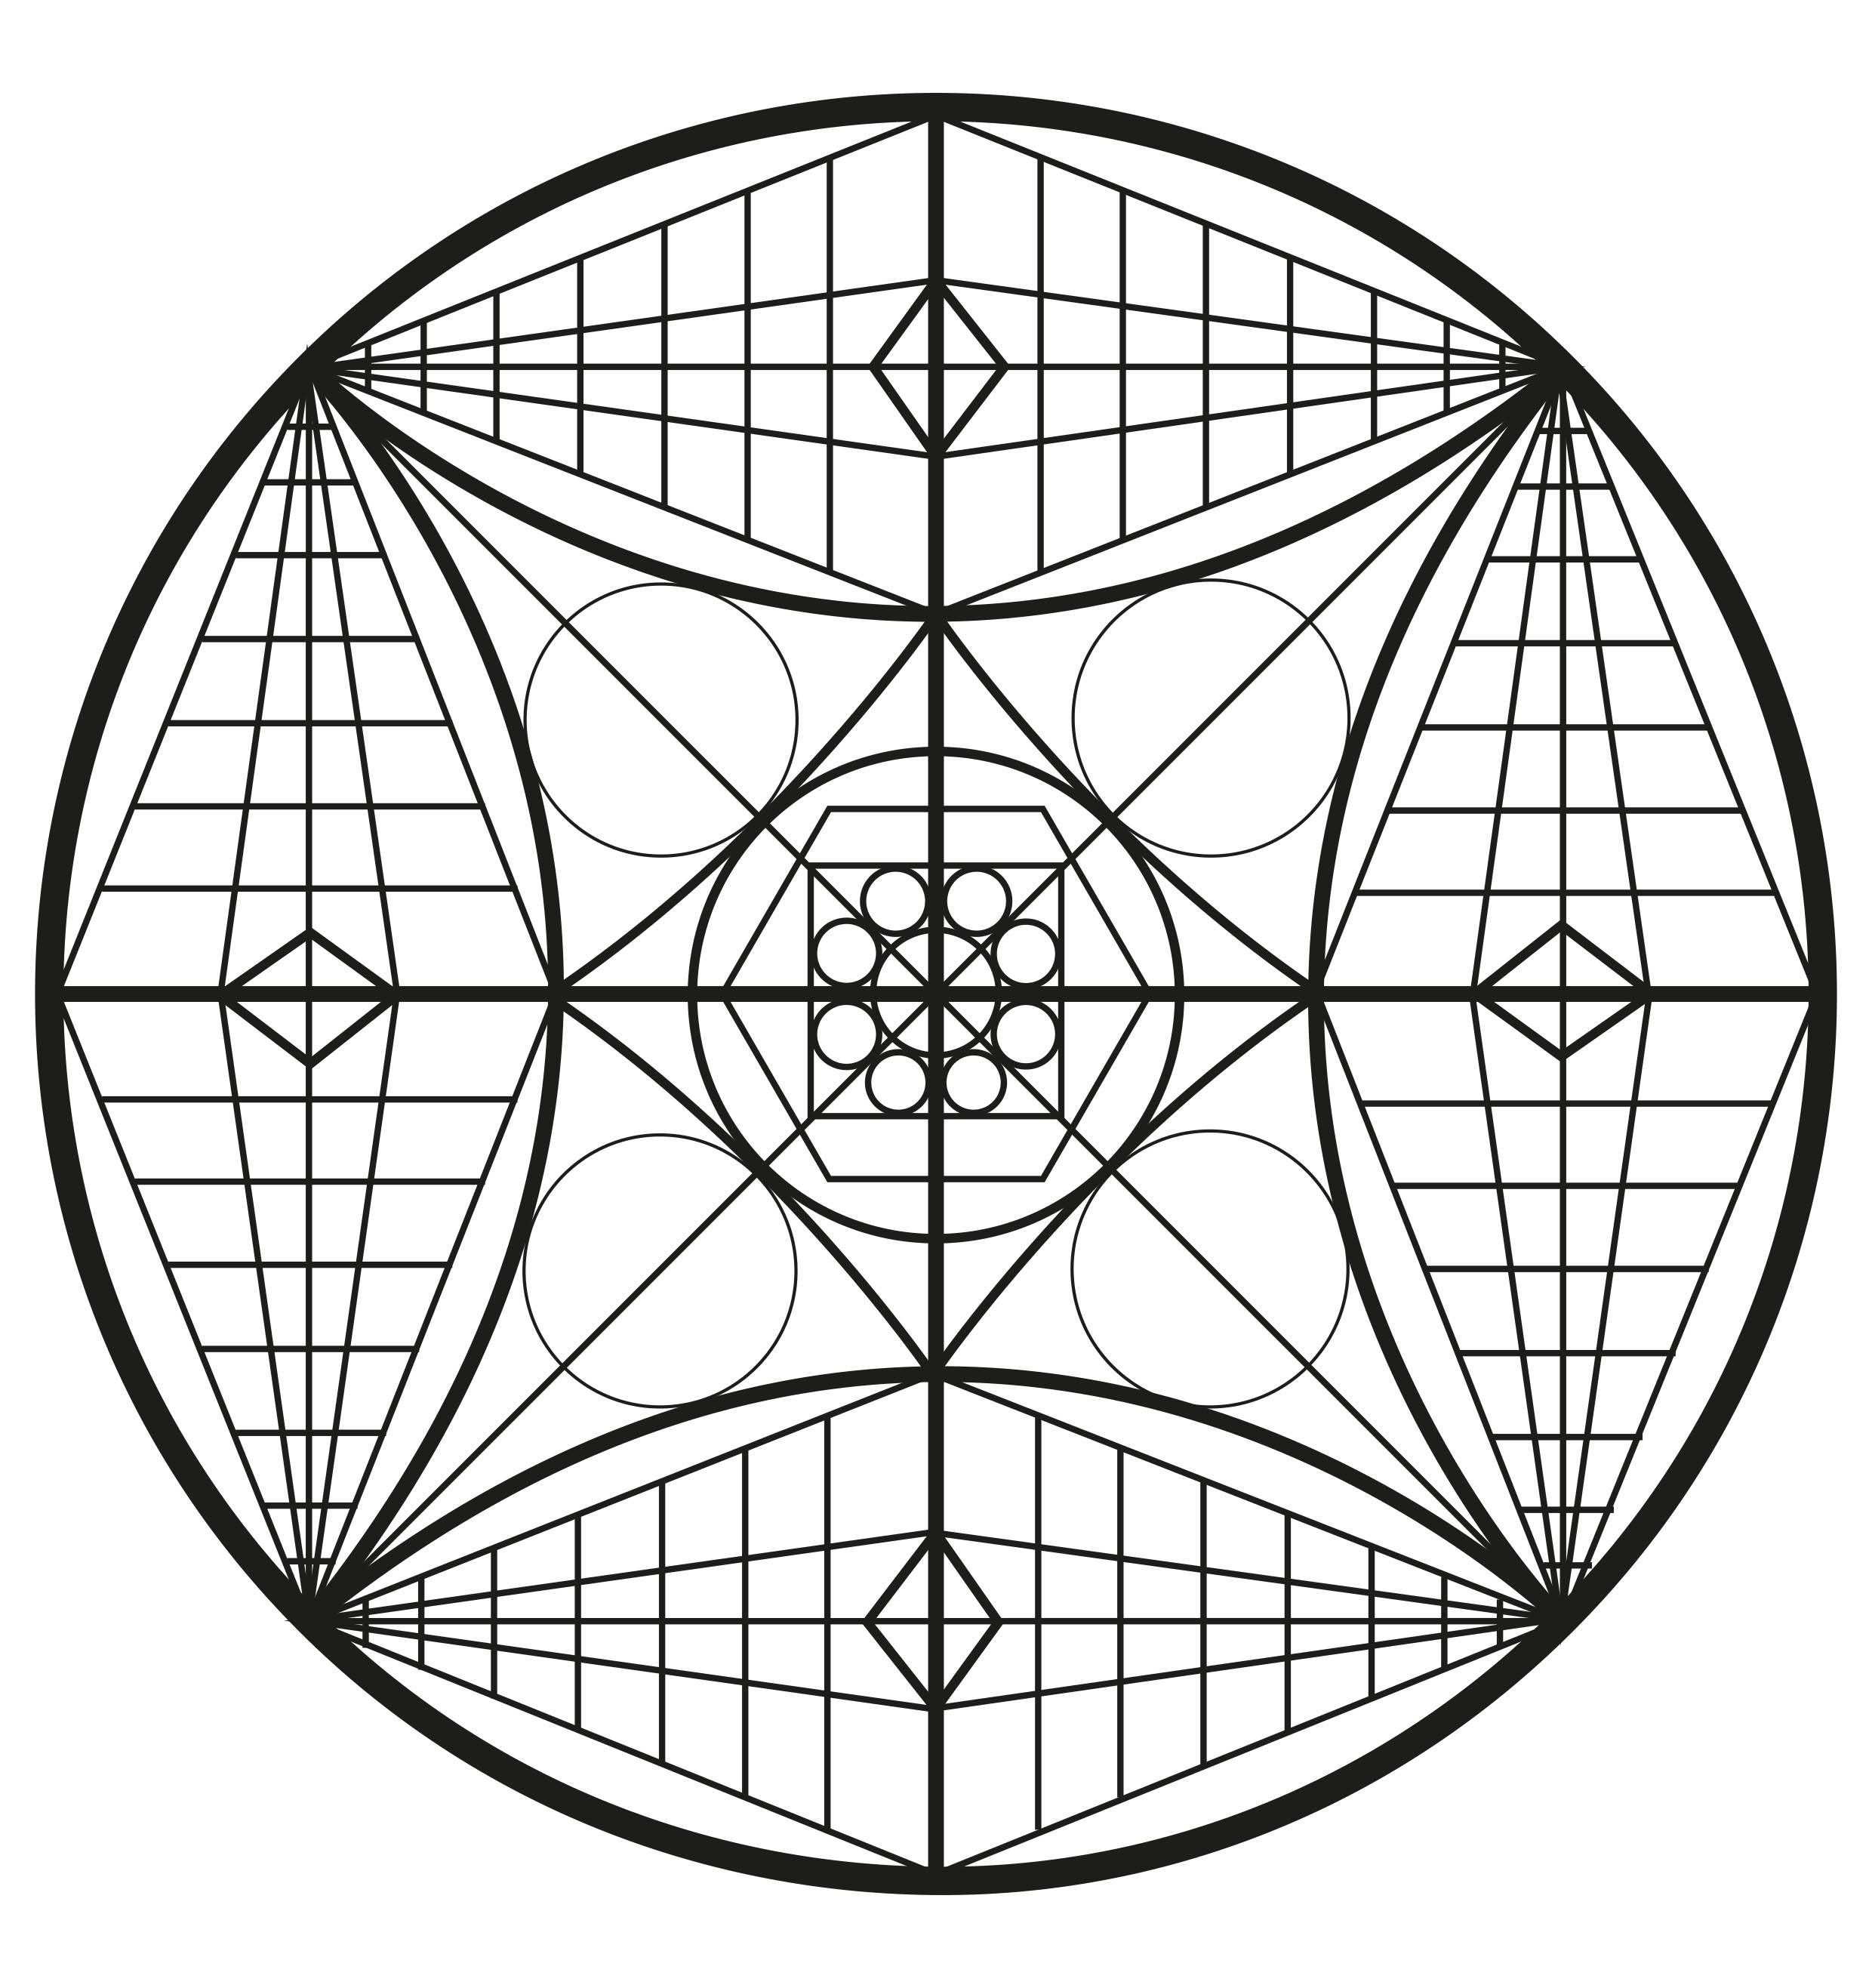 simple mandalas to color mandalas to download for free mandalas kids coloring pages to color mandalas simple